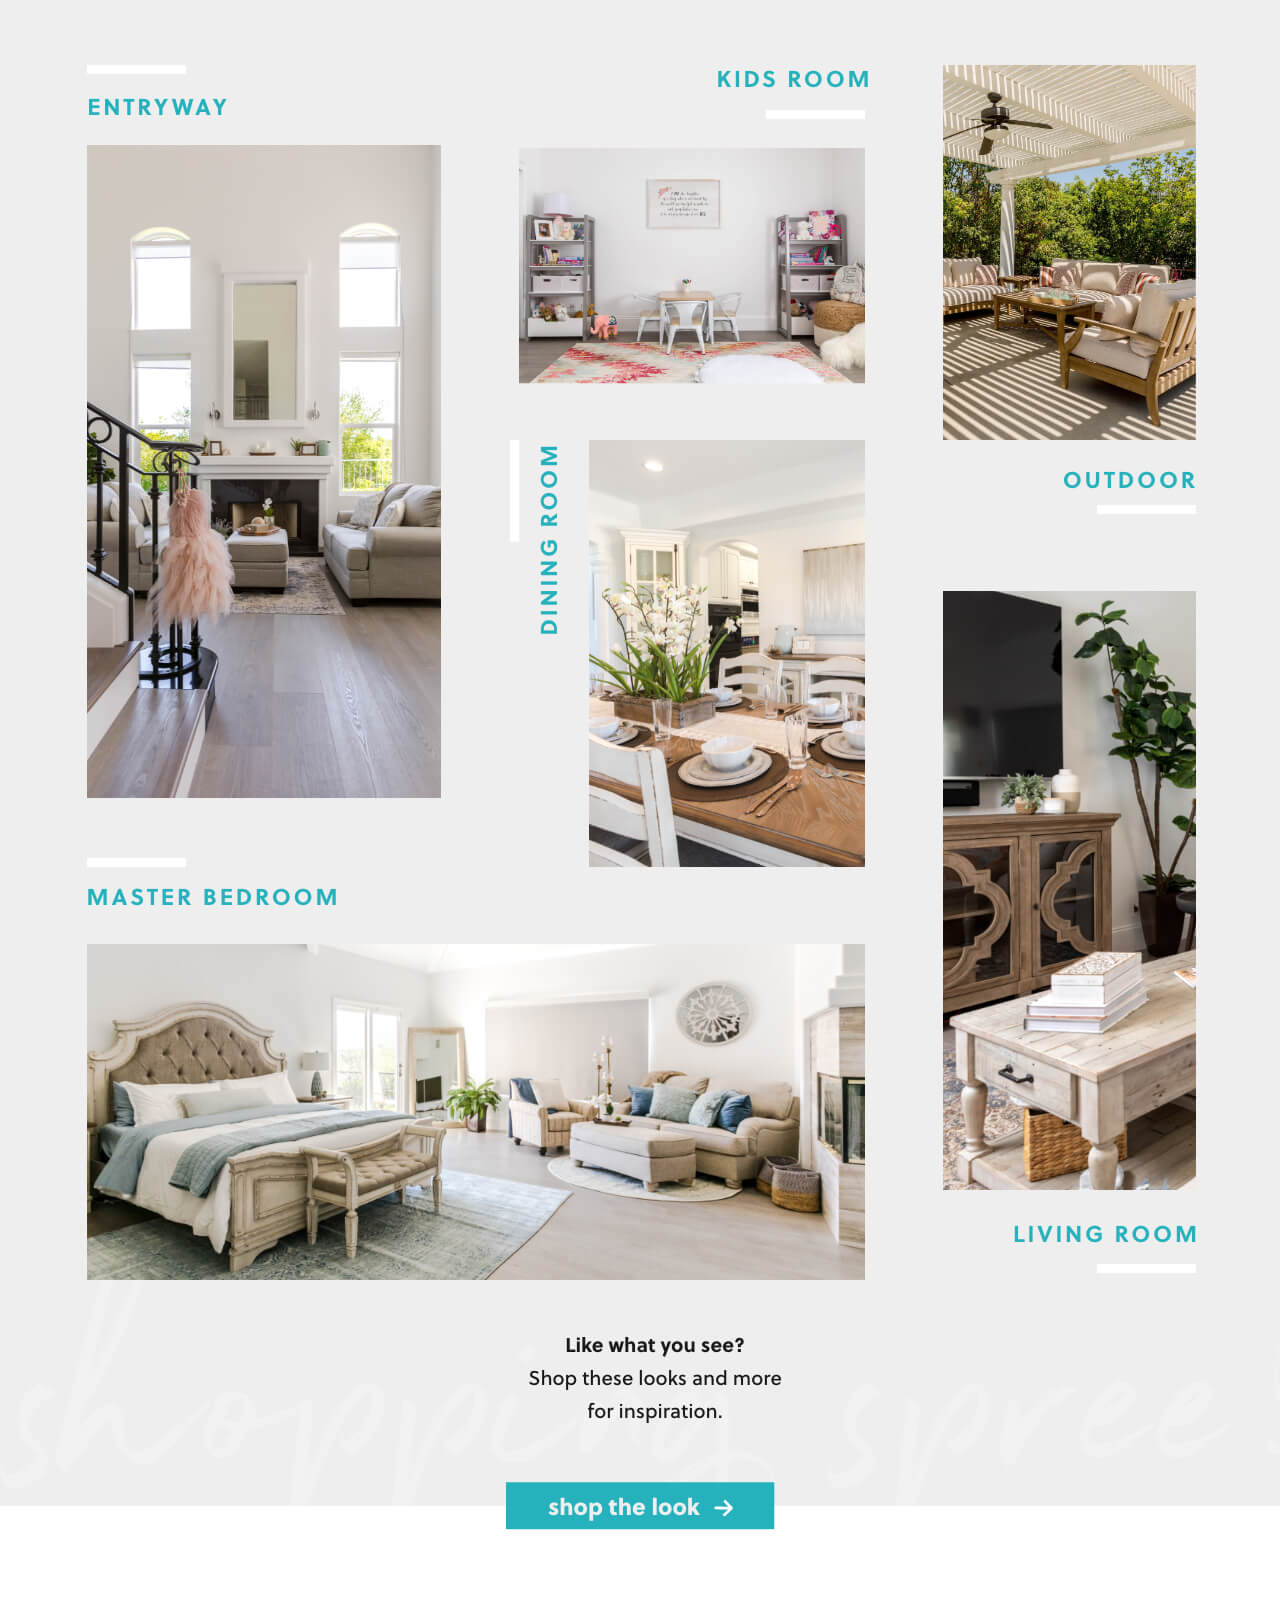 LaBrant Family Home MakeoverGiveaway